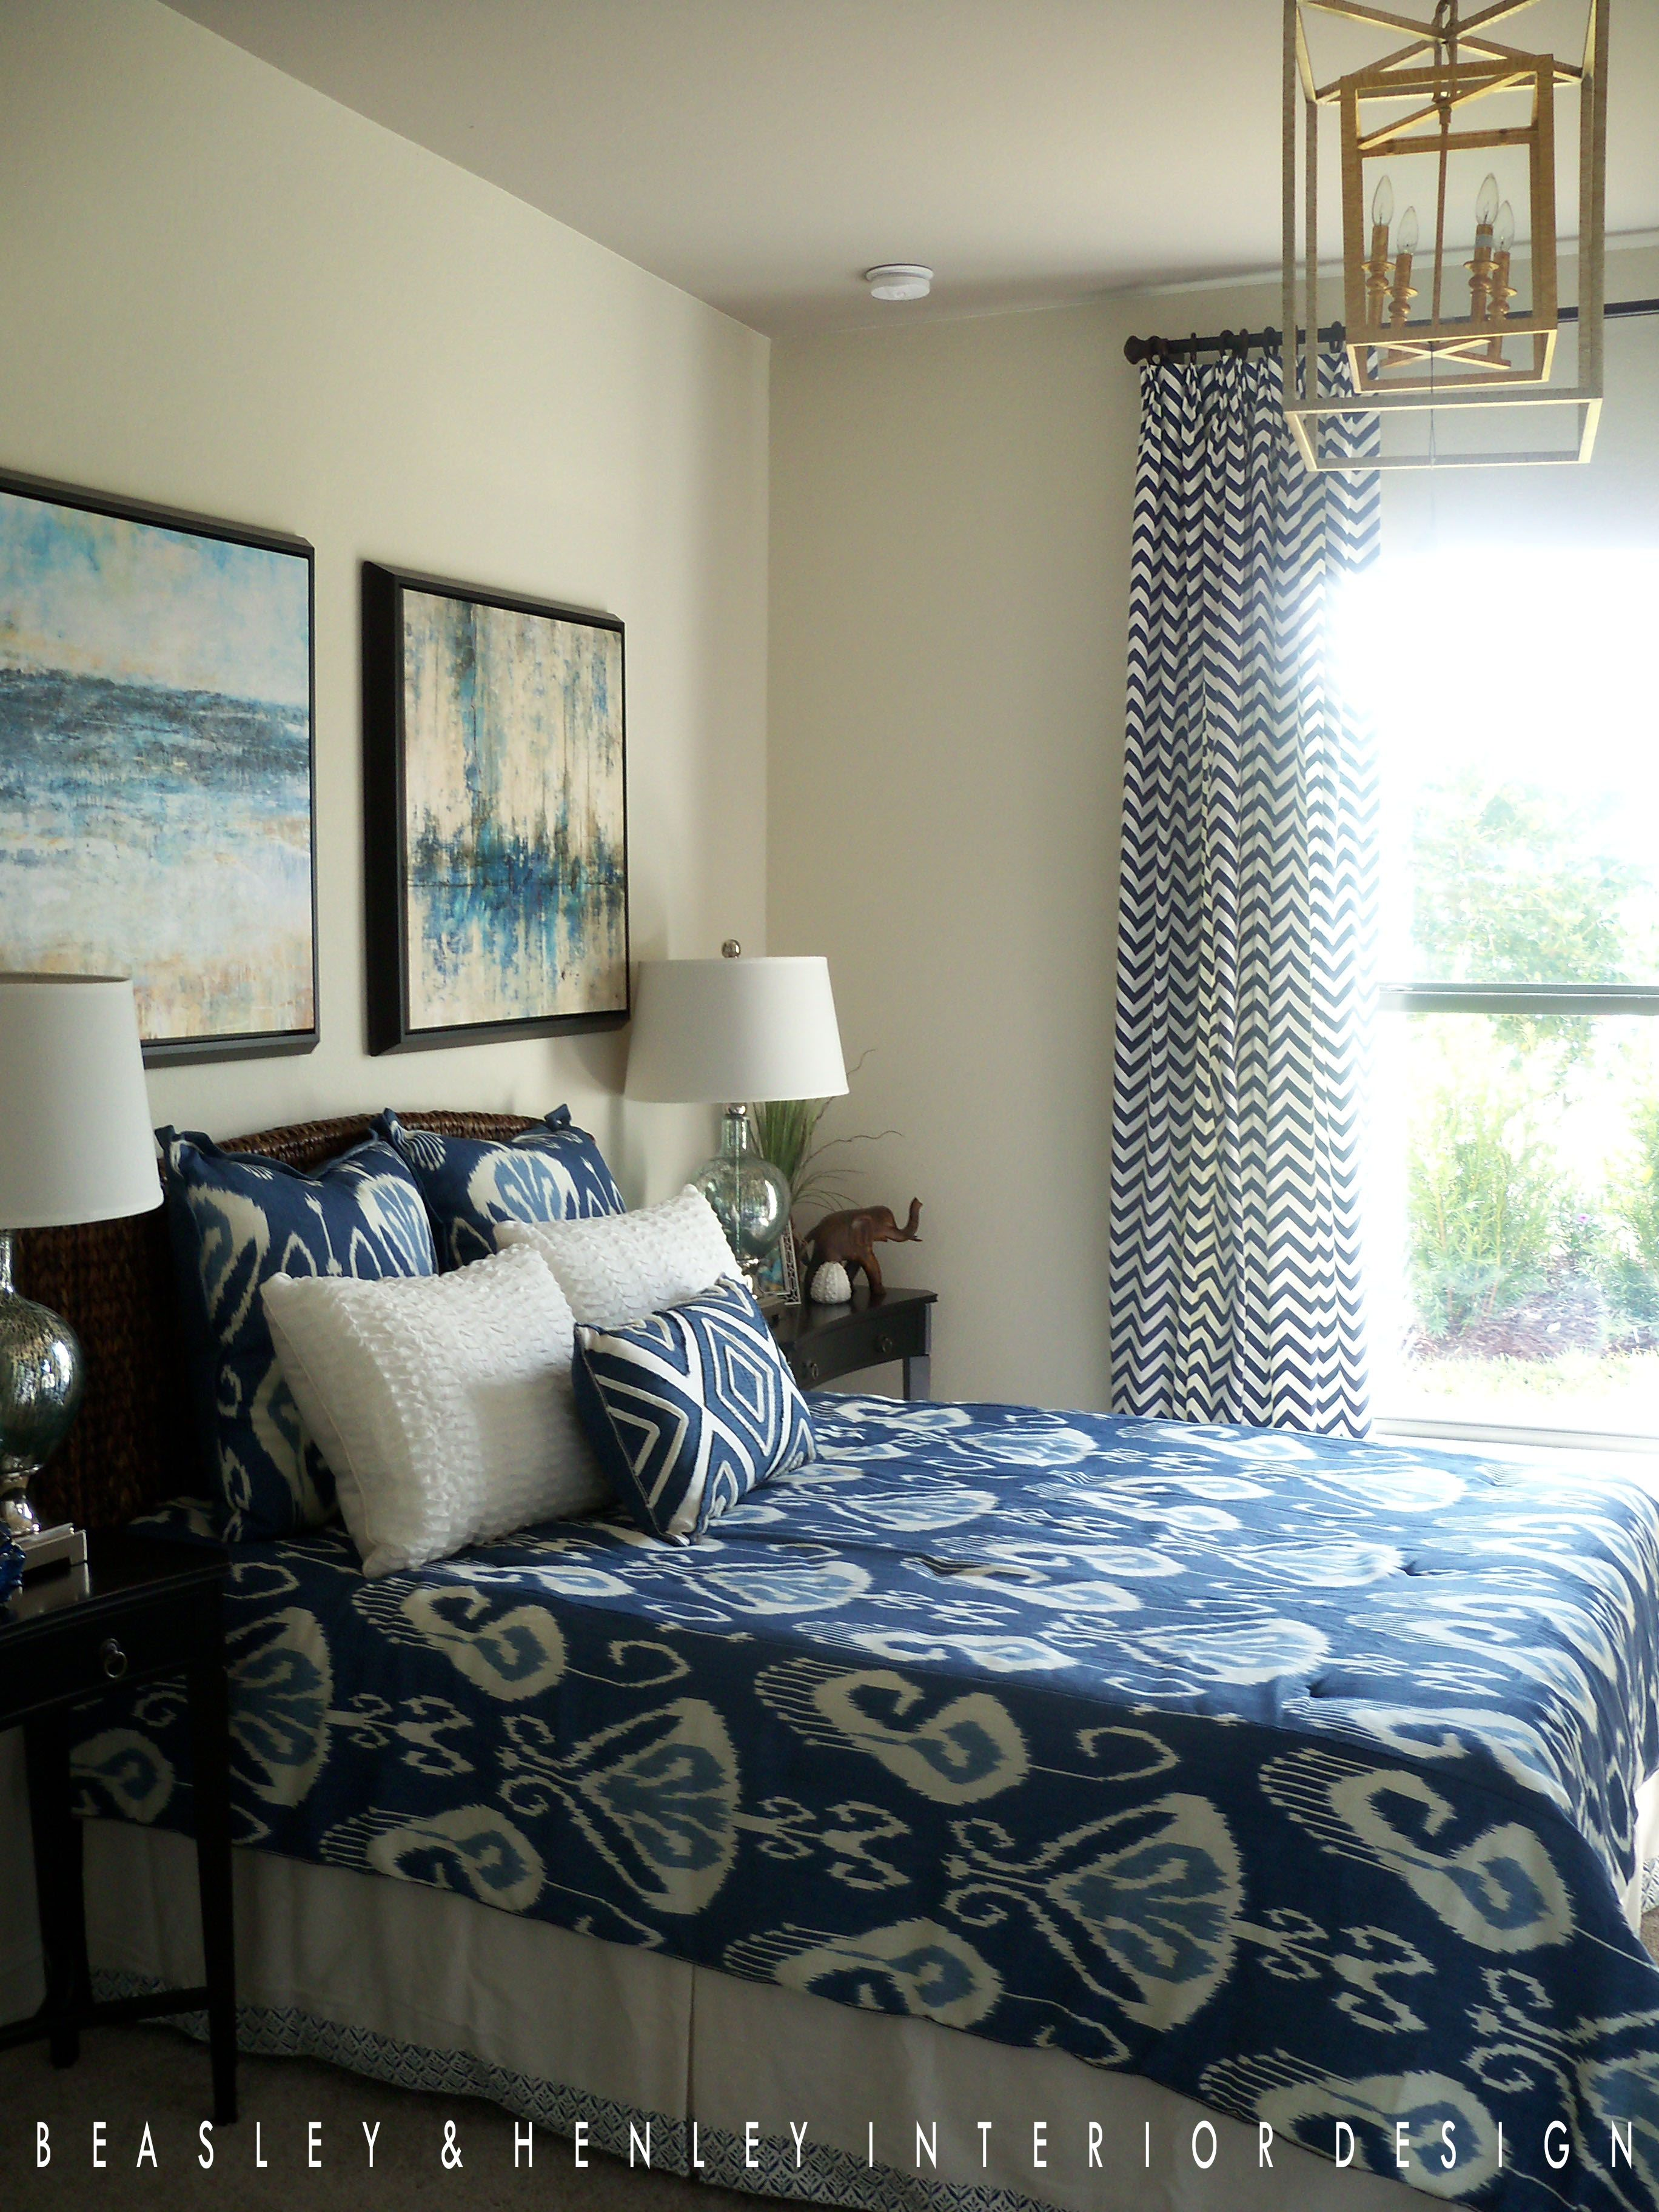 bedroom designed by beasley henley interior design naples fl